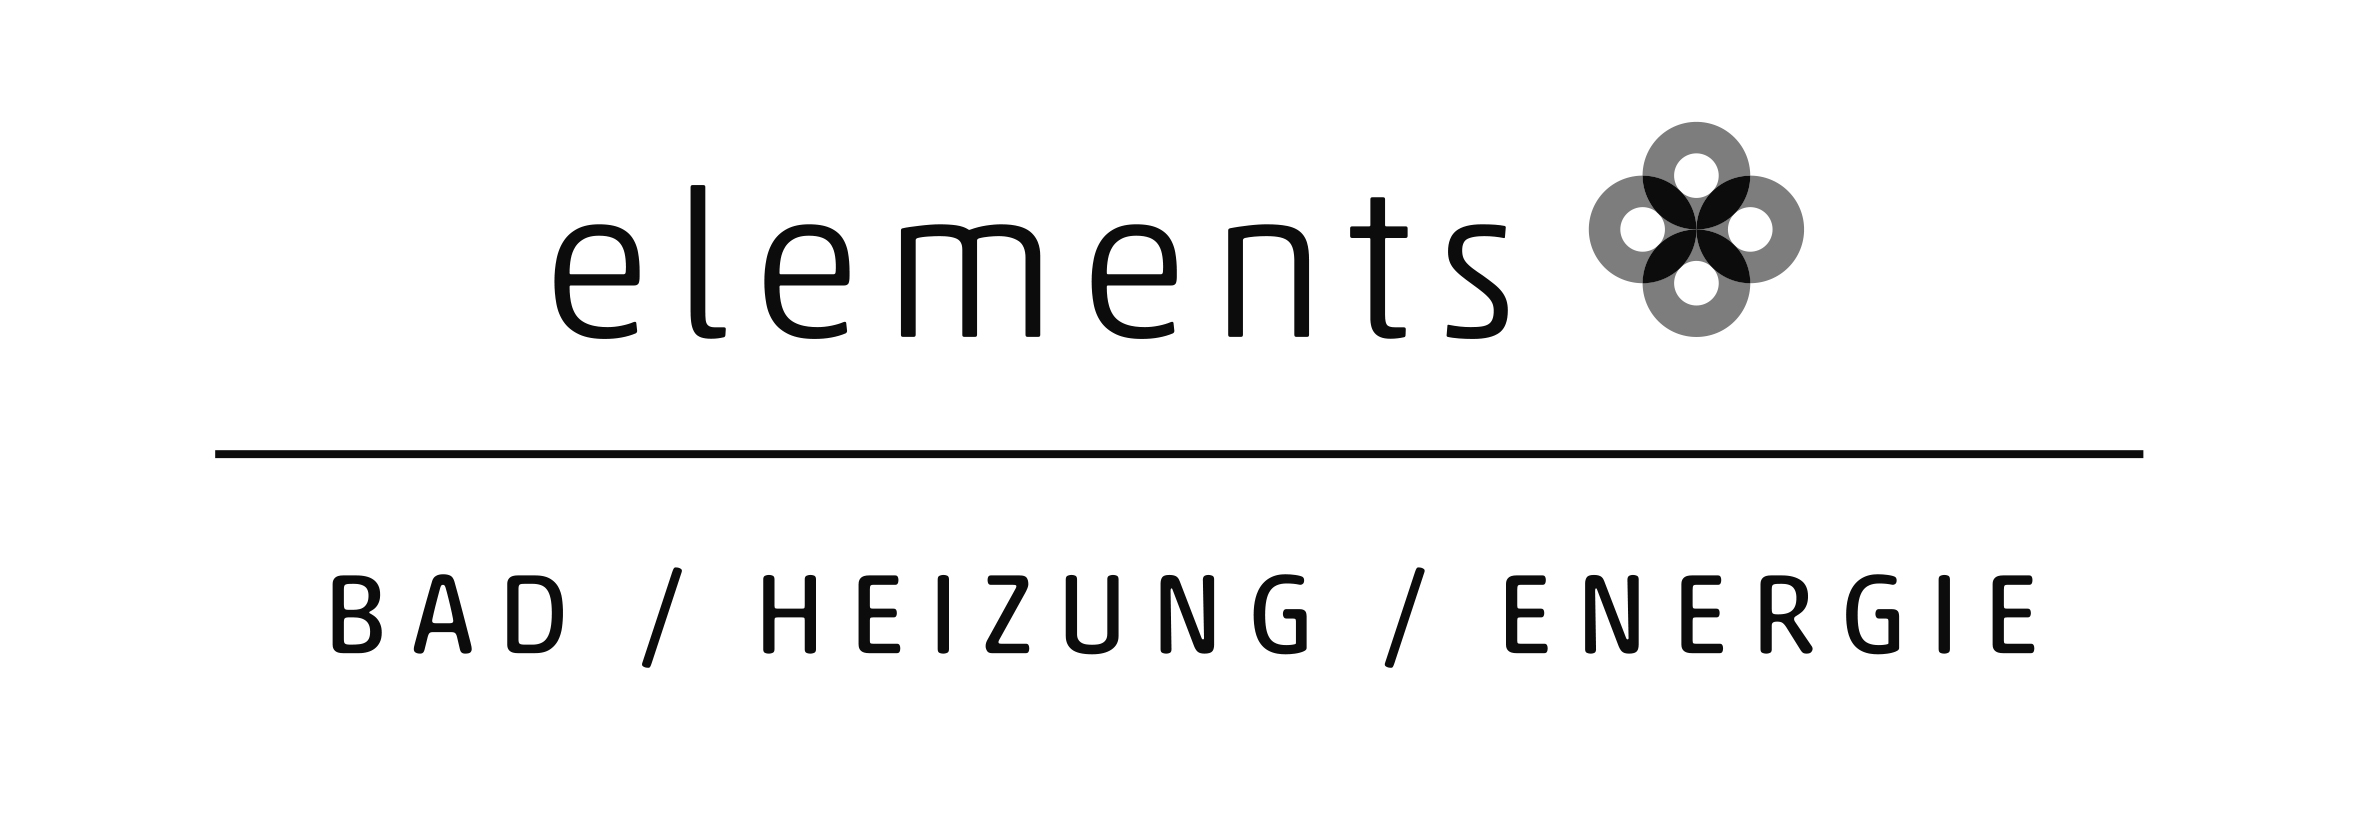 elements - Partner für Bad/Heizung/Energie